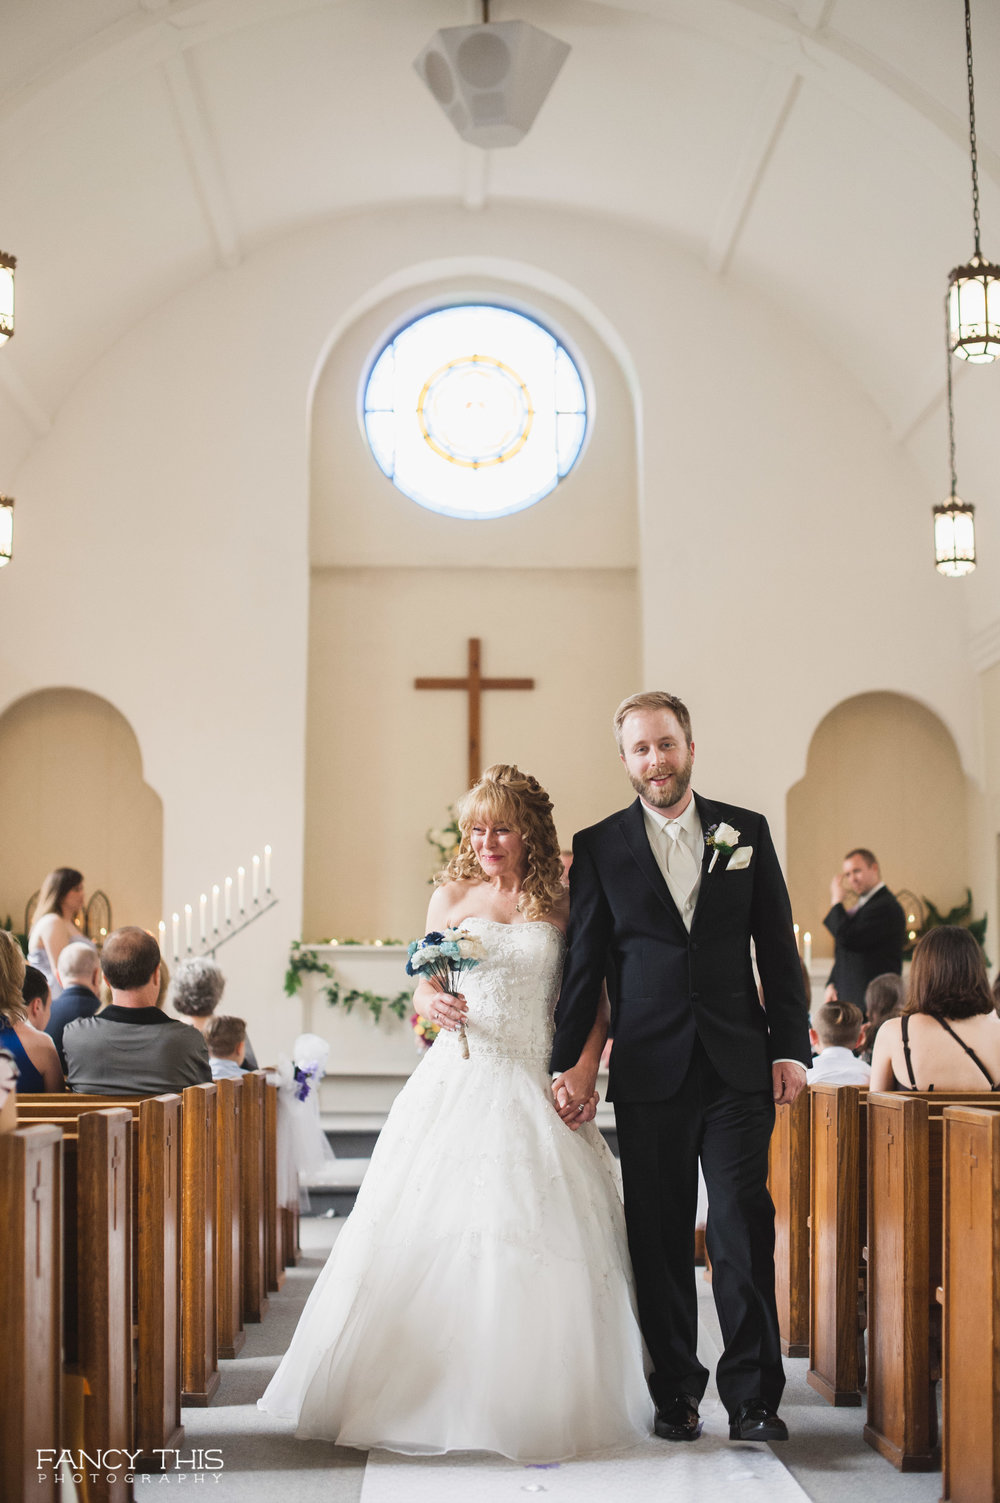 courtneyjasonwedding_socialmediaready125.jpg